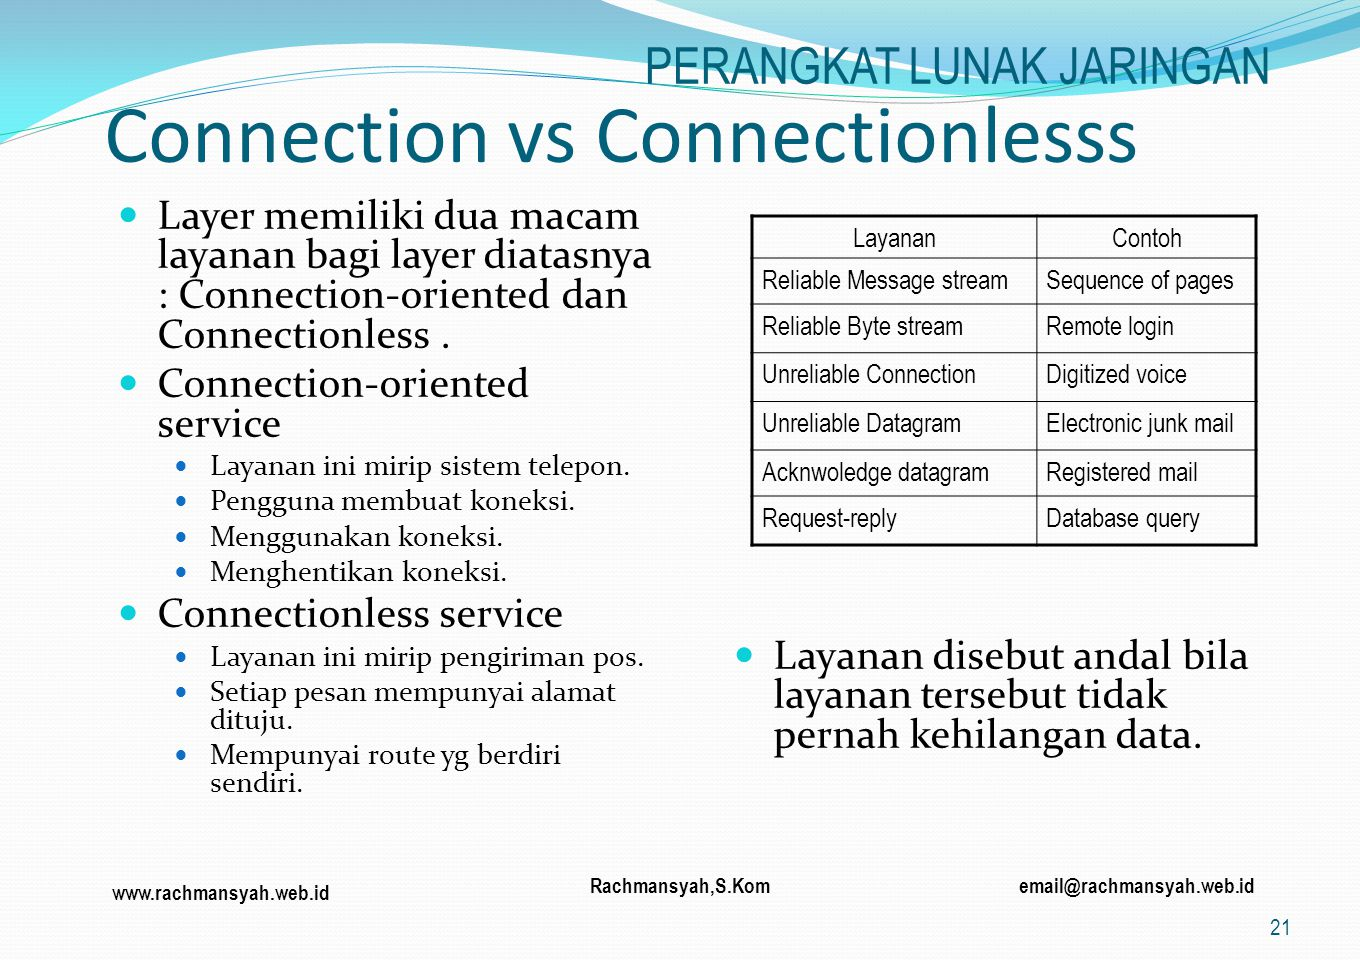 Connection vs Connectionlesss